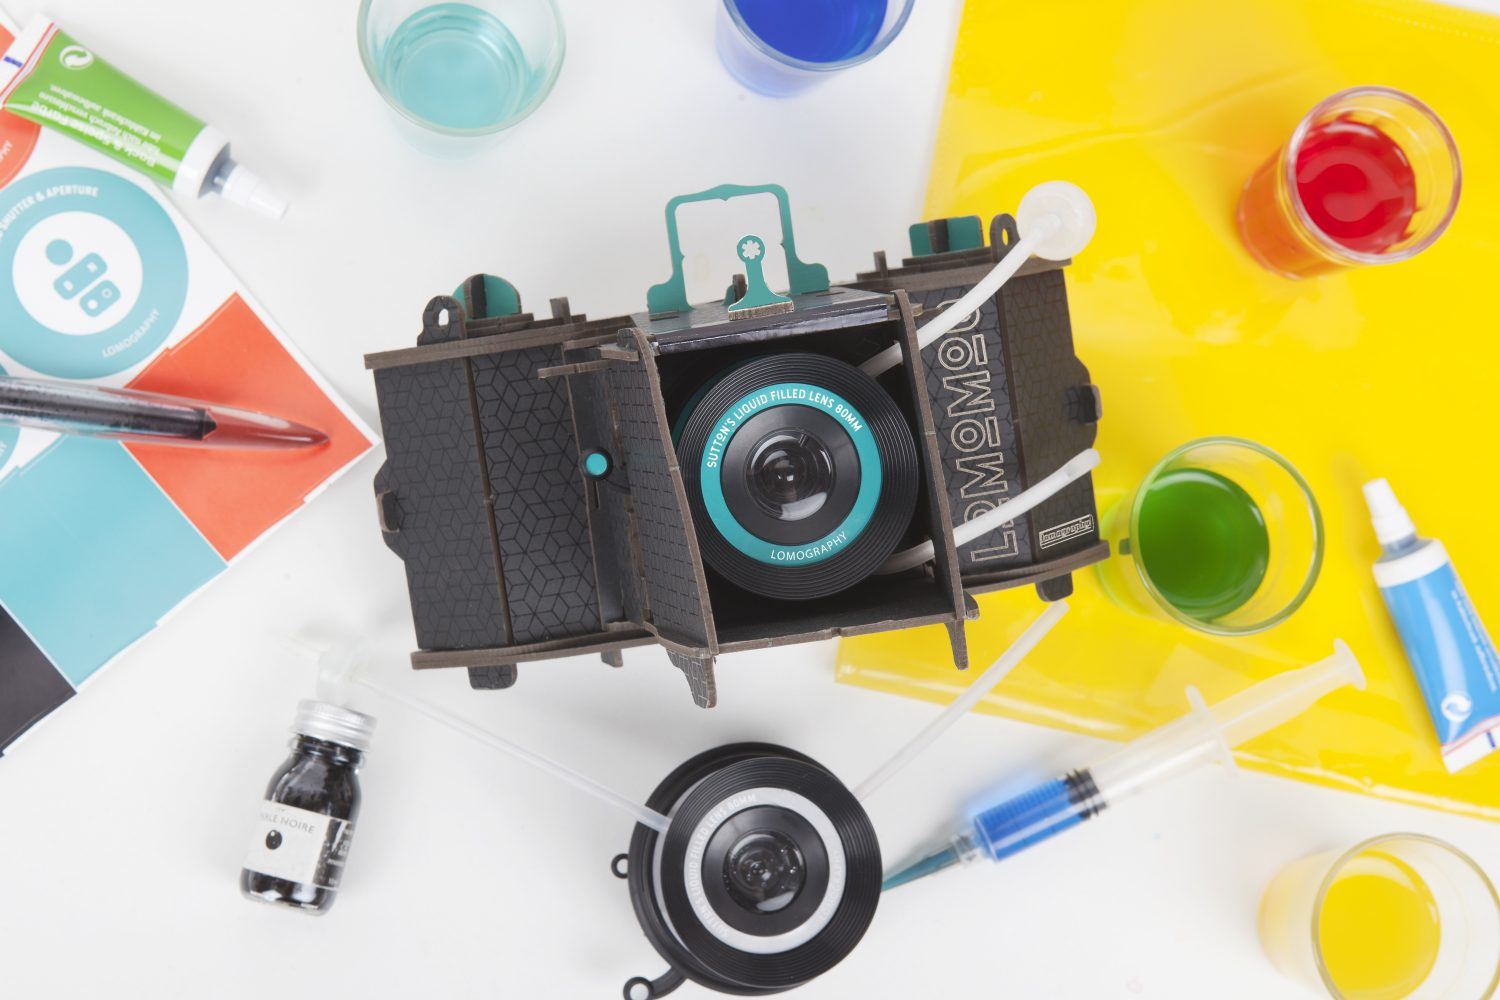 LomoMod No.1 camera (Pic: Lomography)